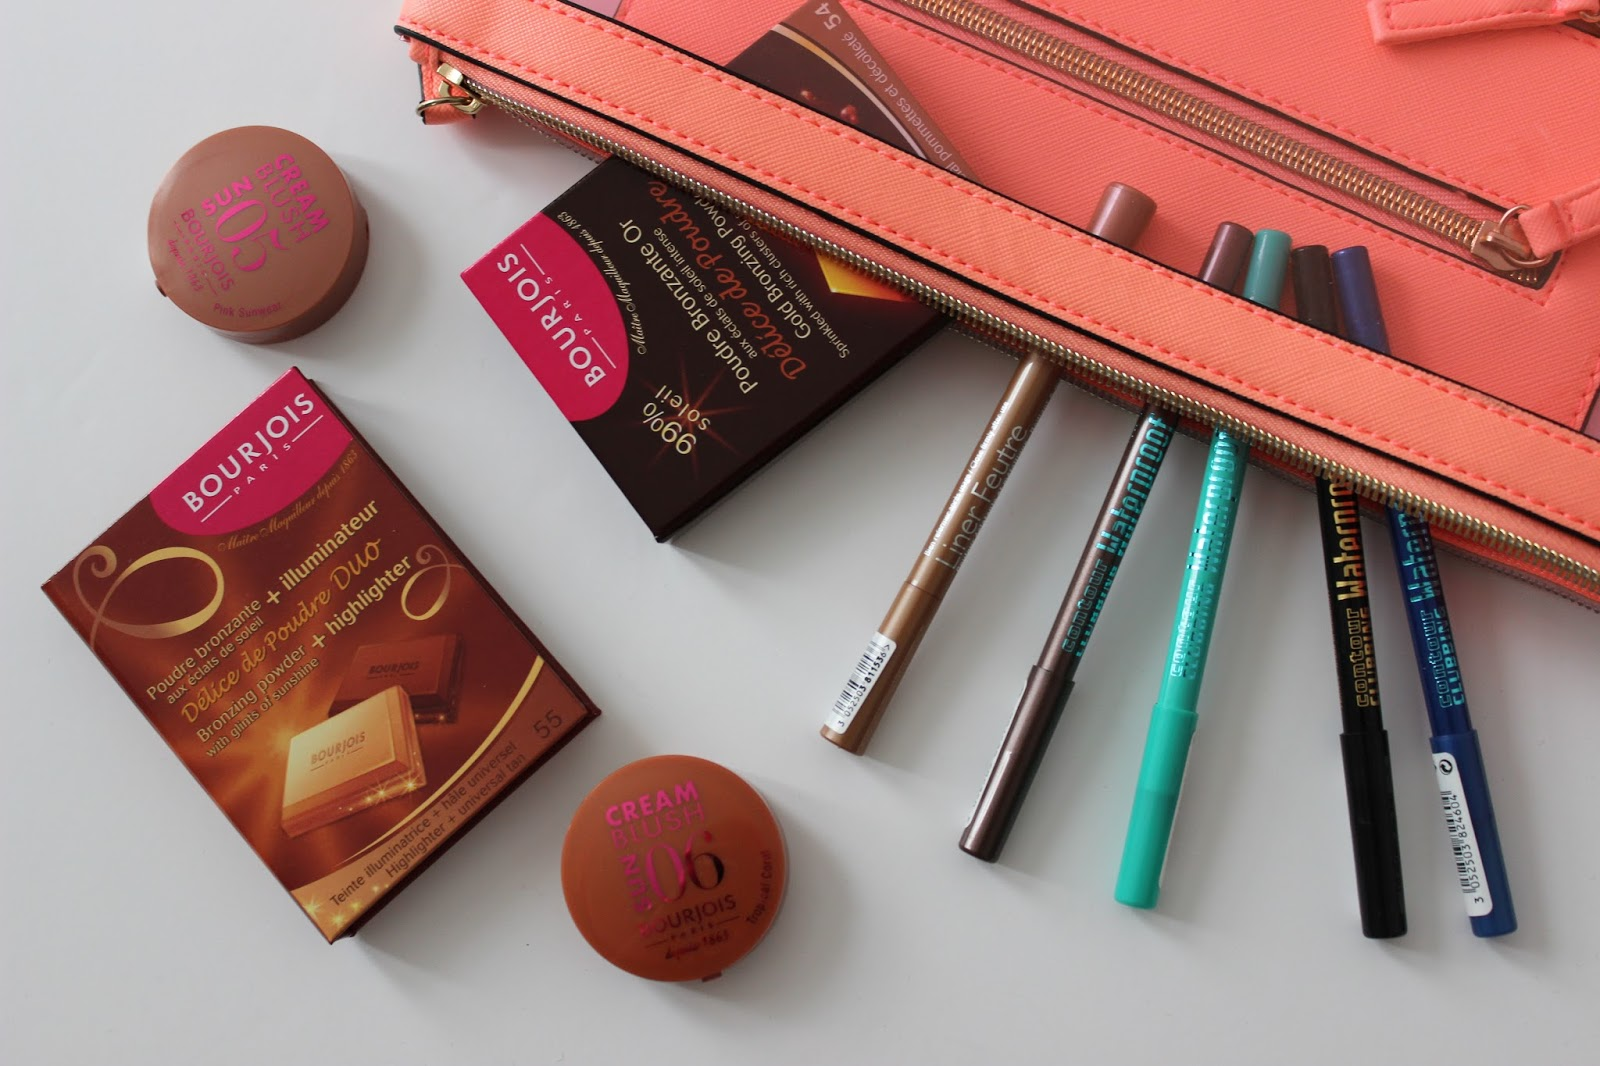 Bourjois summer 2014 makeup launches